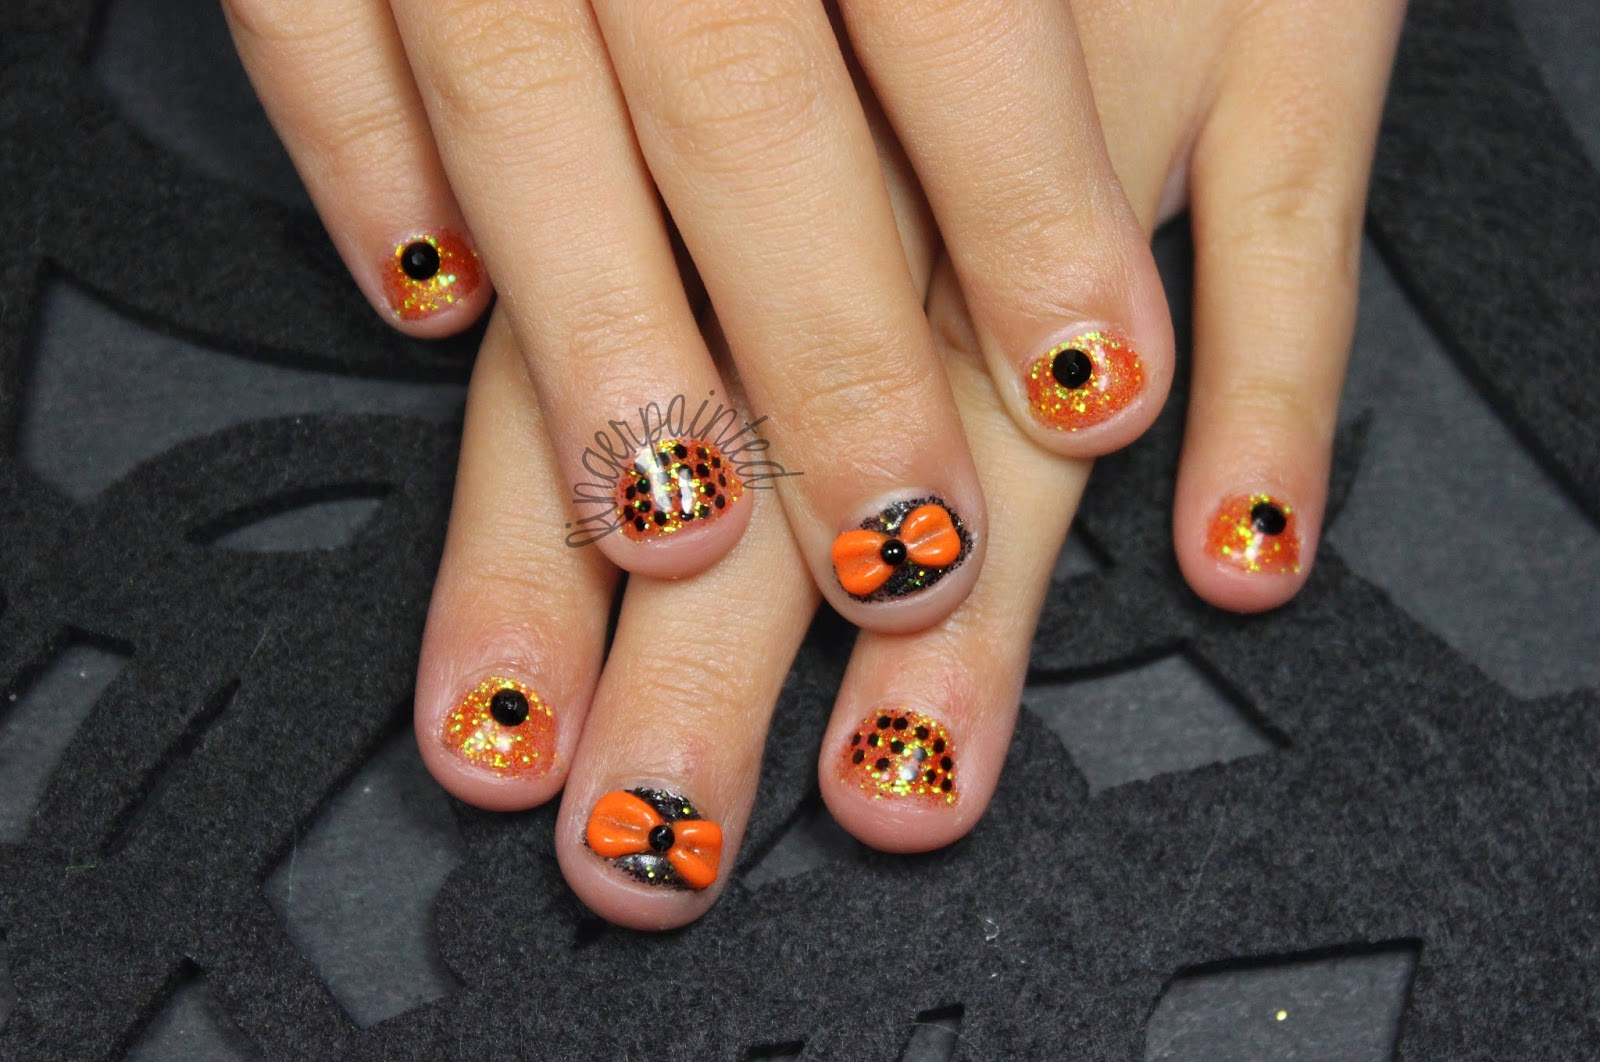 Cute Acrylic Nail Designs For Kids | 2017 - 2018 Best Cars ...